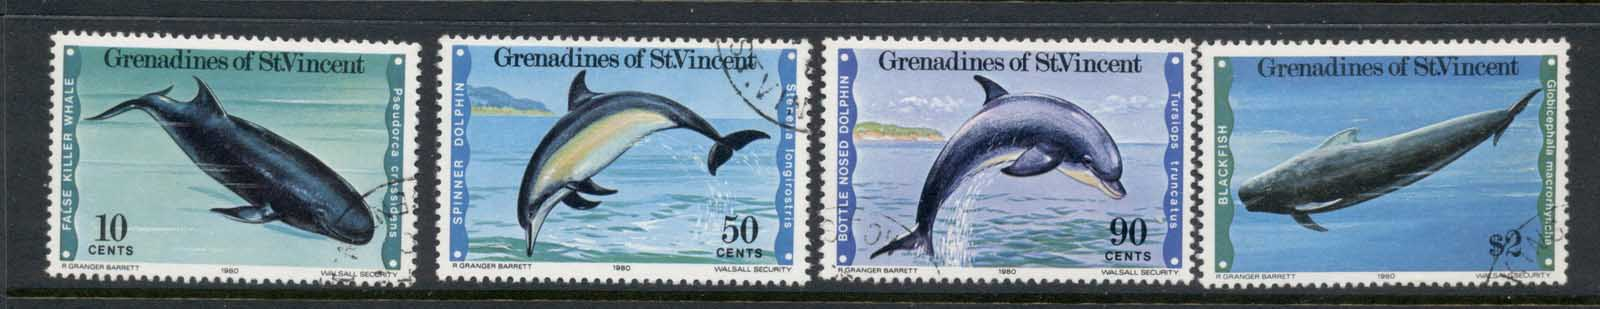 St Vincent Grenadines 1979 Whales & Dolphins FU